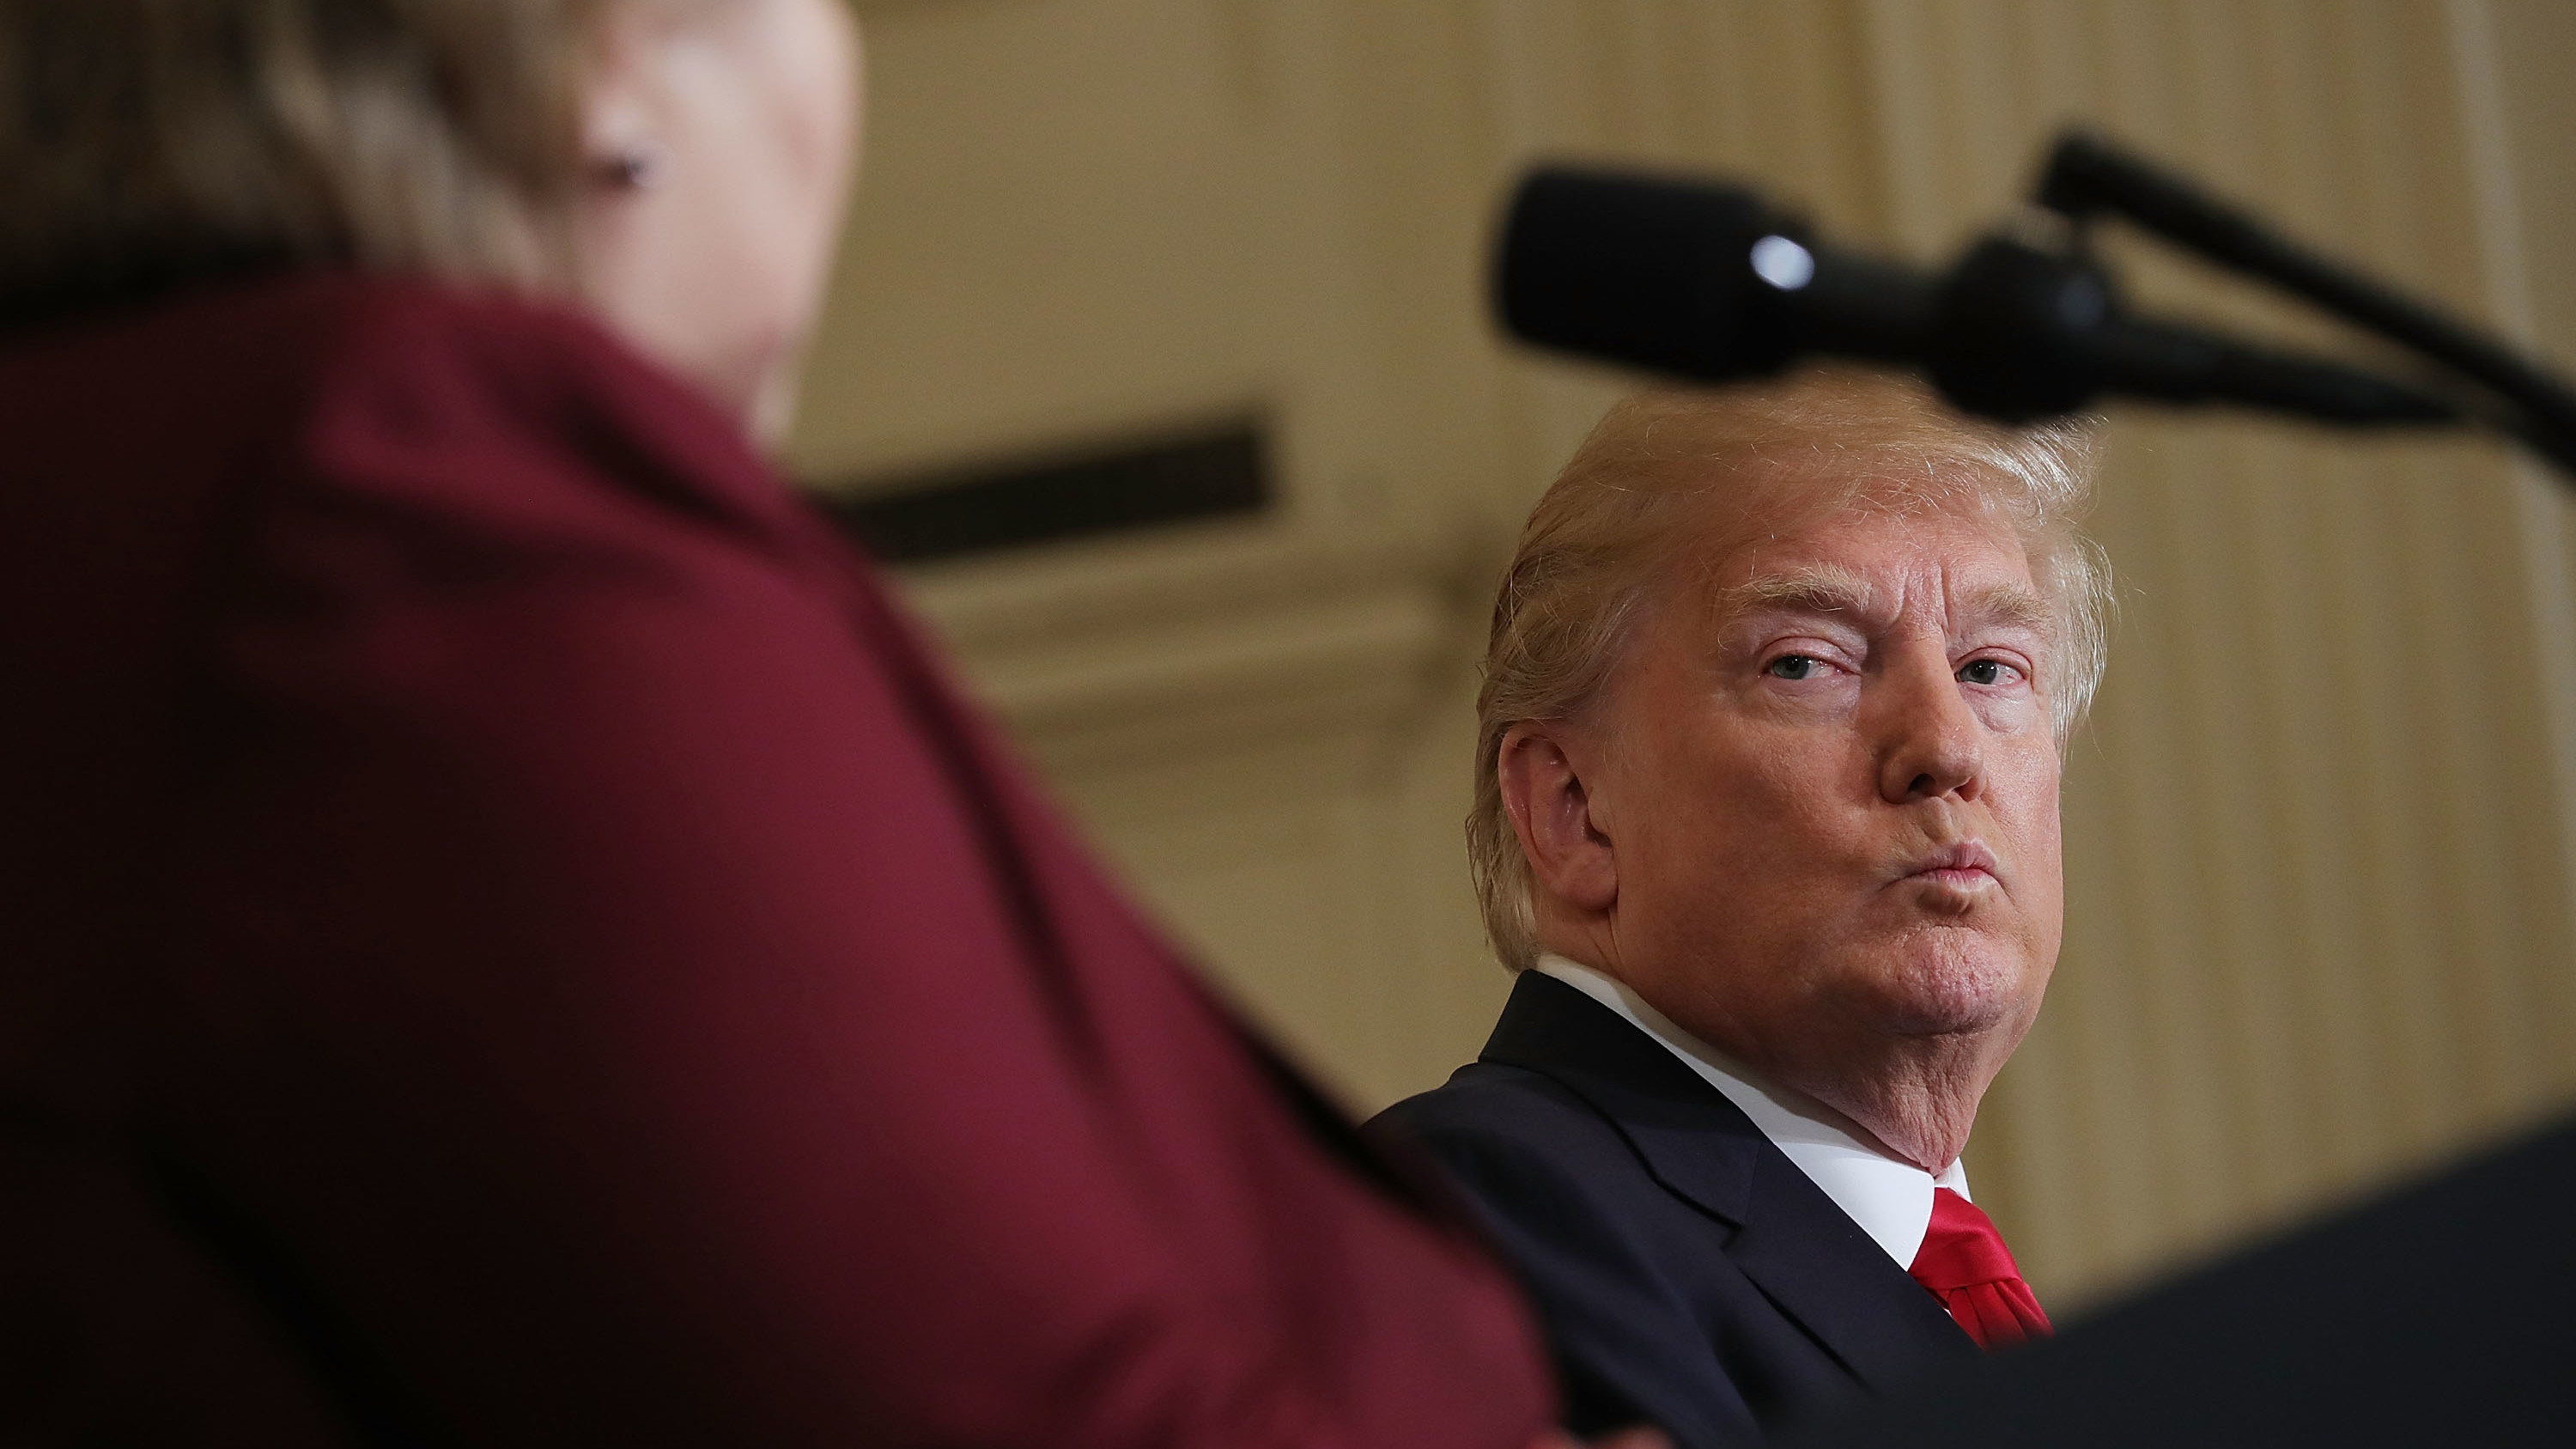 President Trump listens as Norwegian Prime Minister Erna Solberg speaks at a joint news conference Wednesday. At an Oval Office meeting on immigration policy, Trump said the U.S. should want more people from countries like Norway, disparaging Haiti and what he called